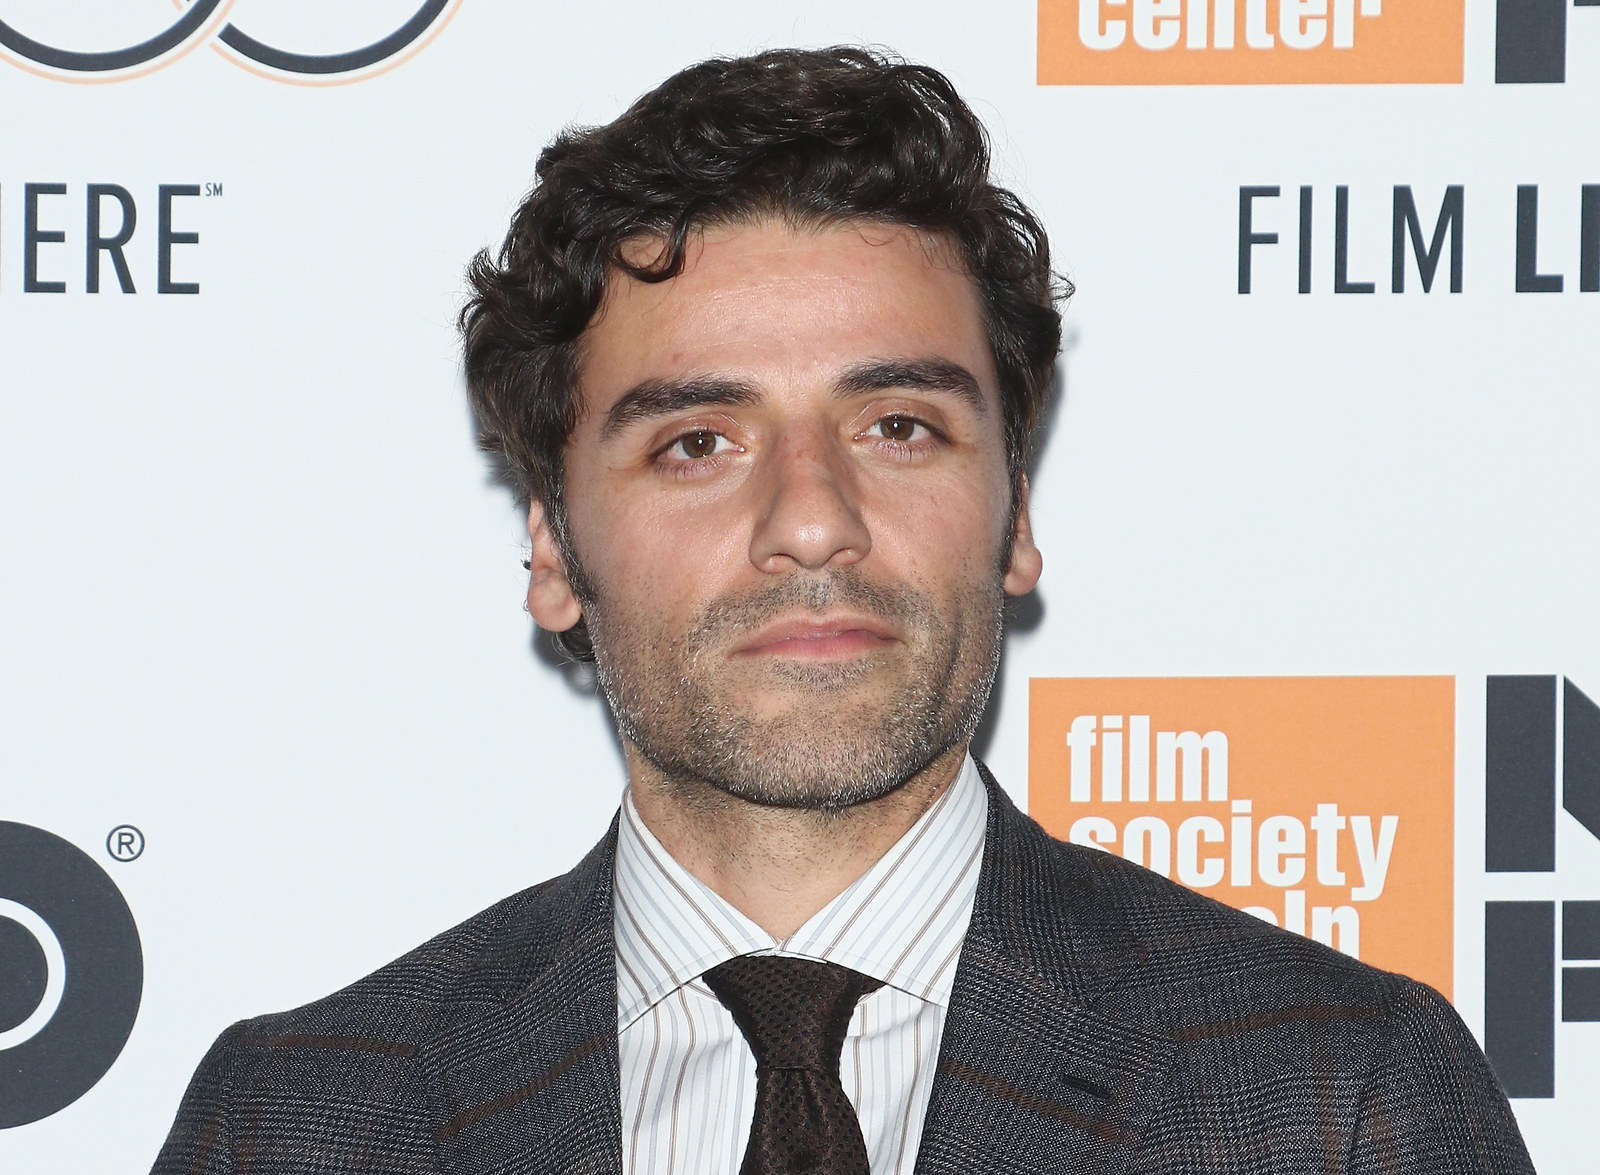 Oscar Isaac will be turning 40 on March 9.